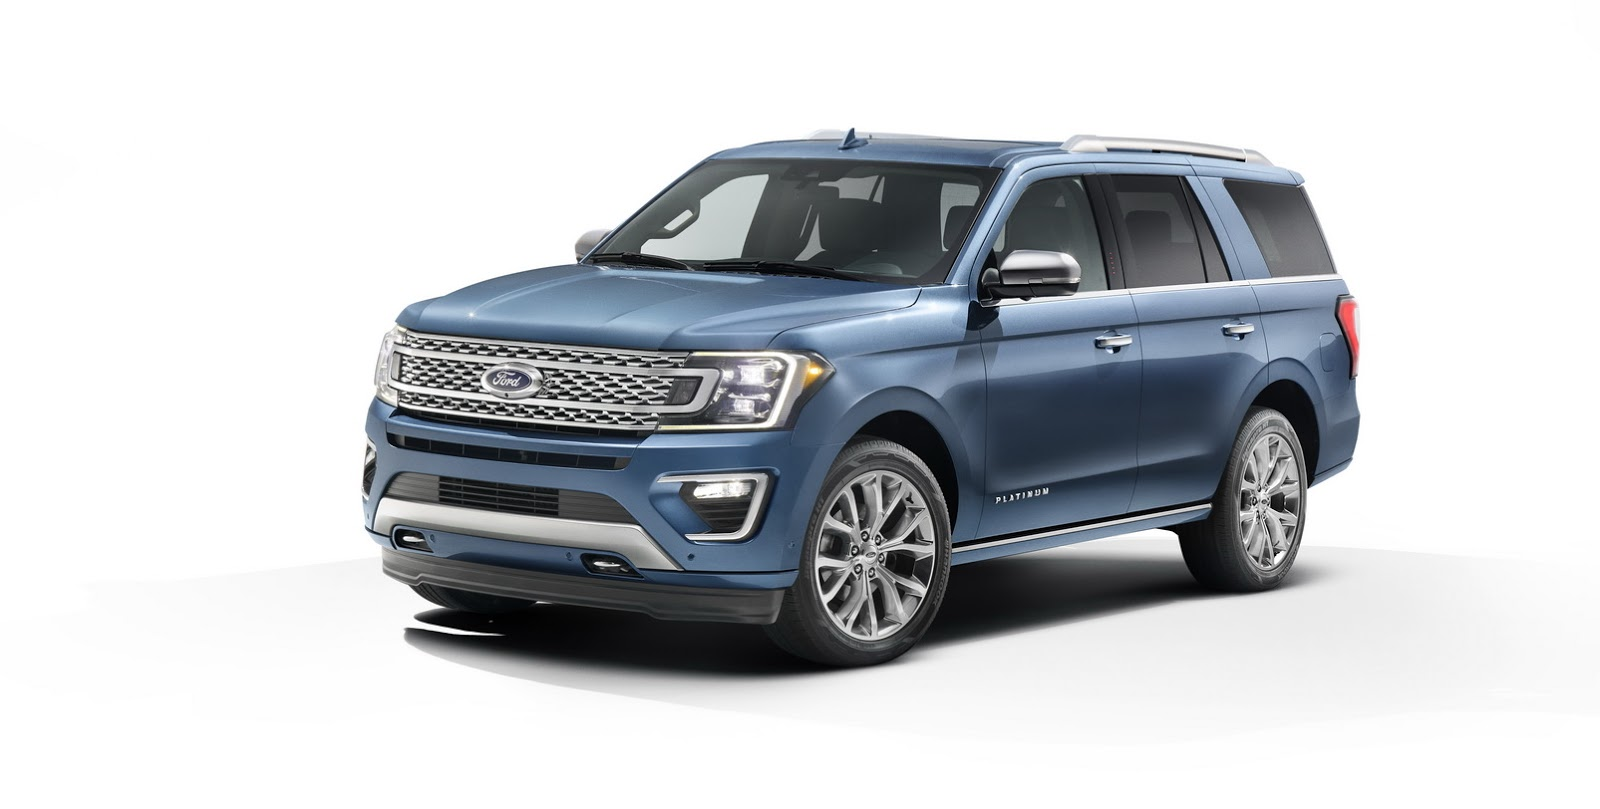 2018 ford expedition dvd player manual